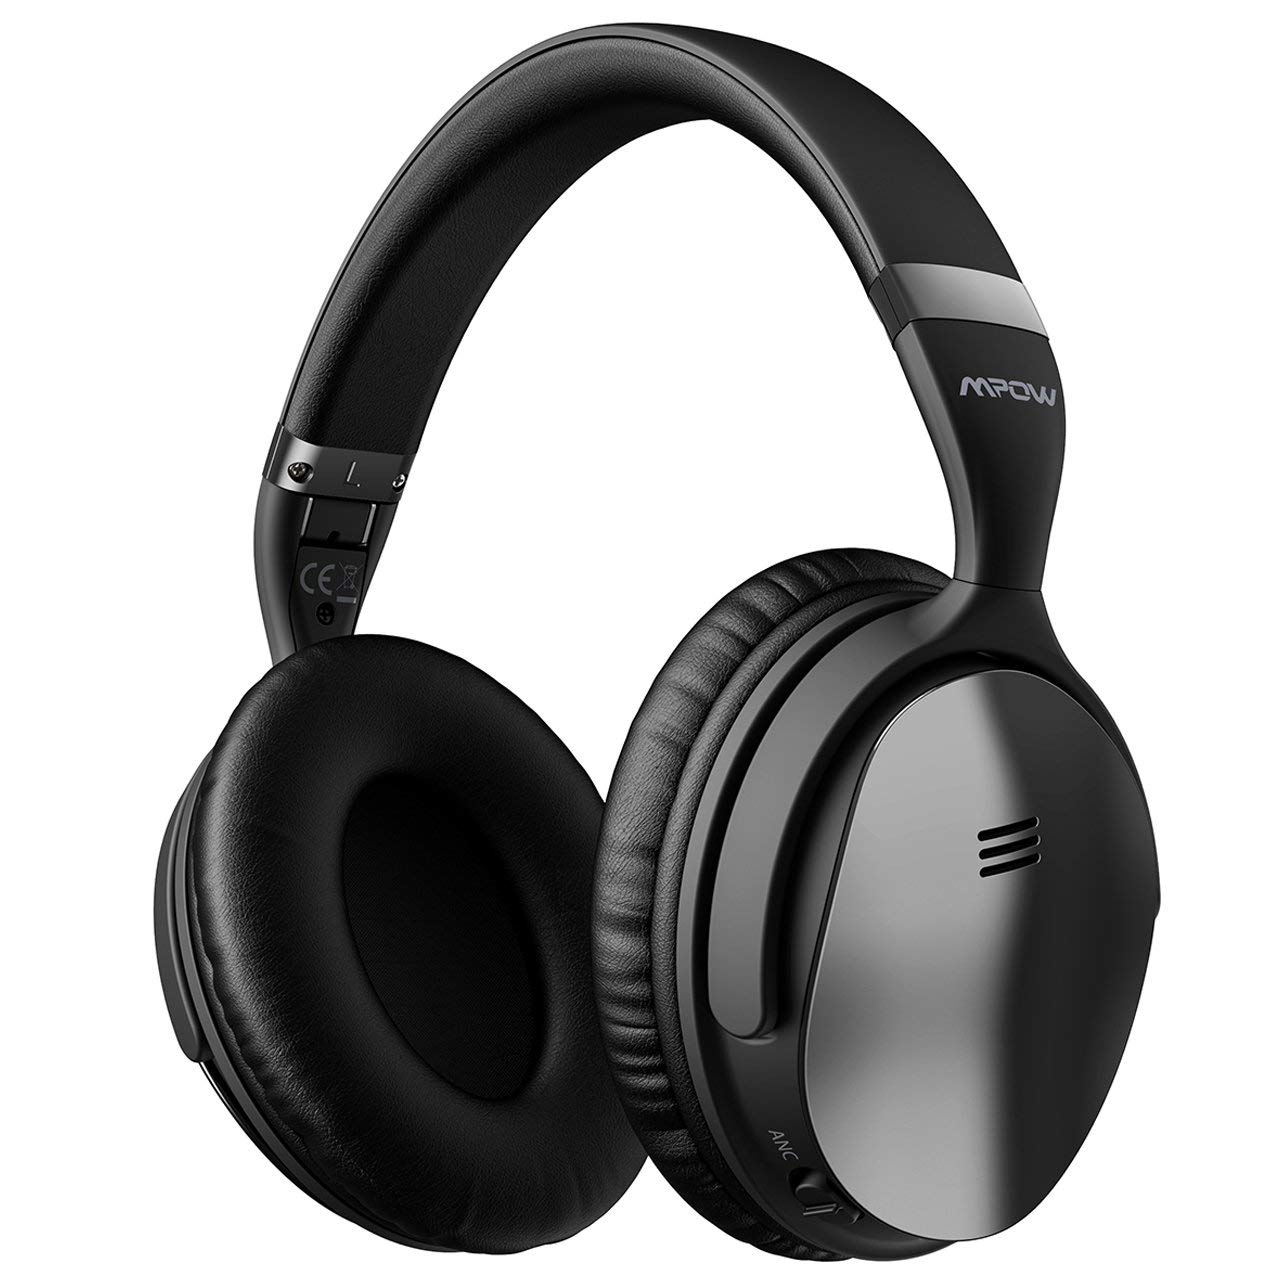 Best noise cancelling headphones under $100 1